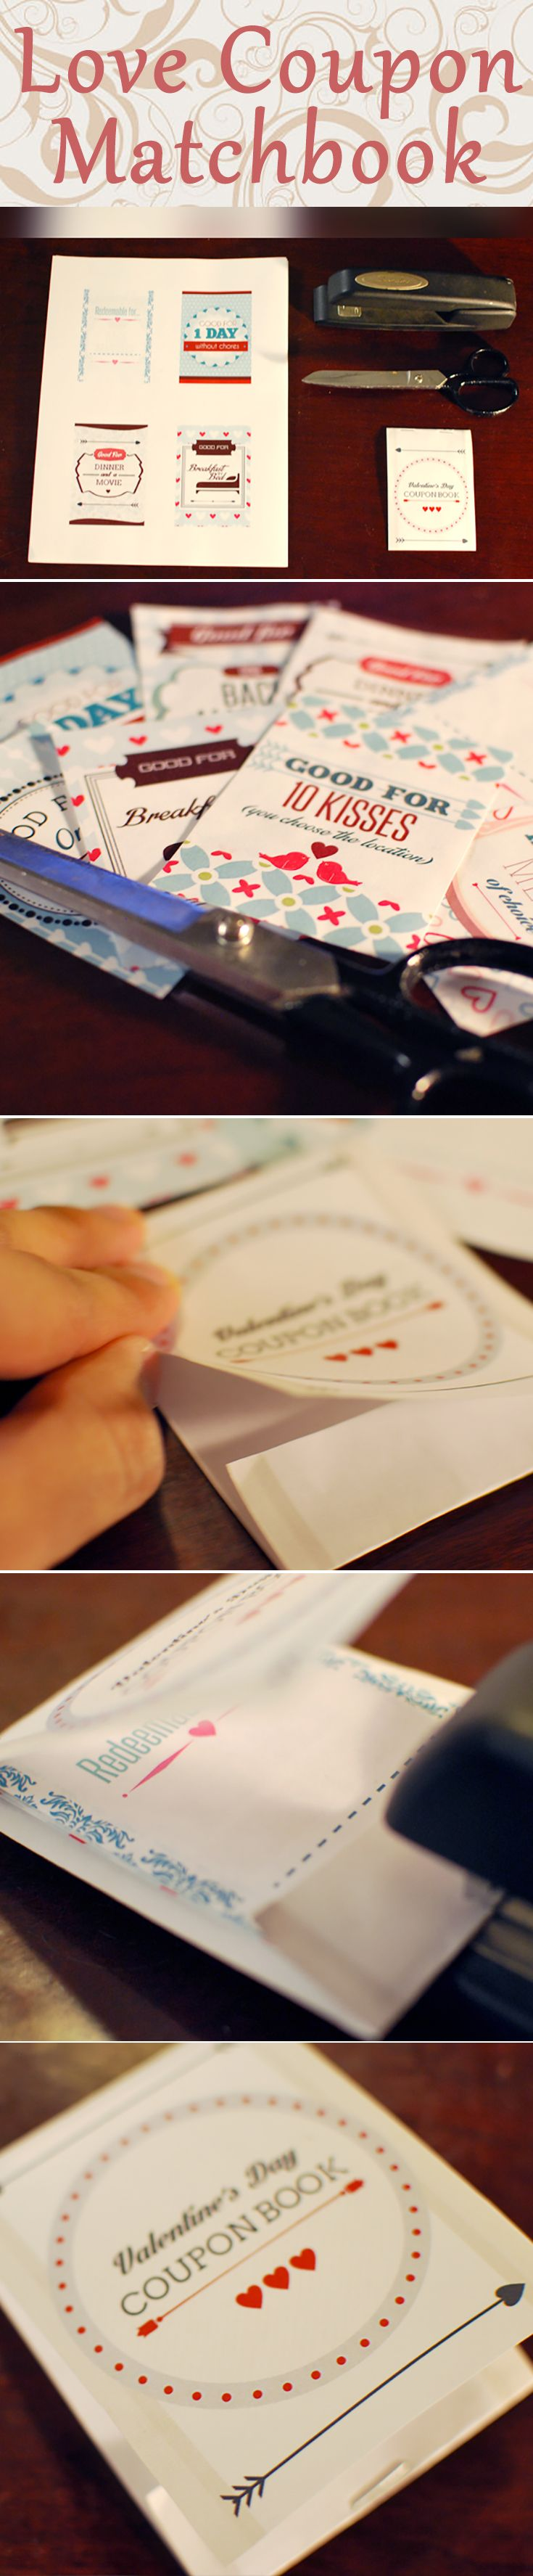 Love Coupon Matchbook! #DIY Valentine's Day gift